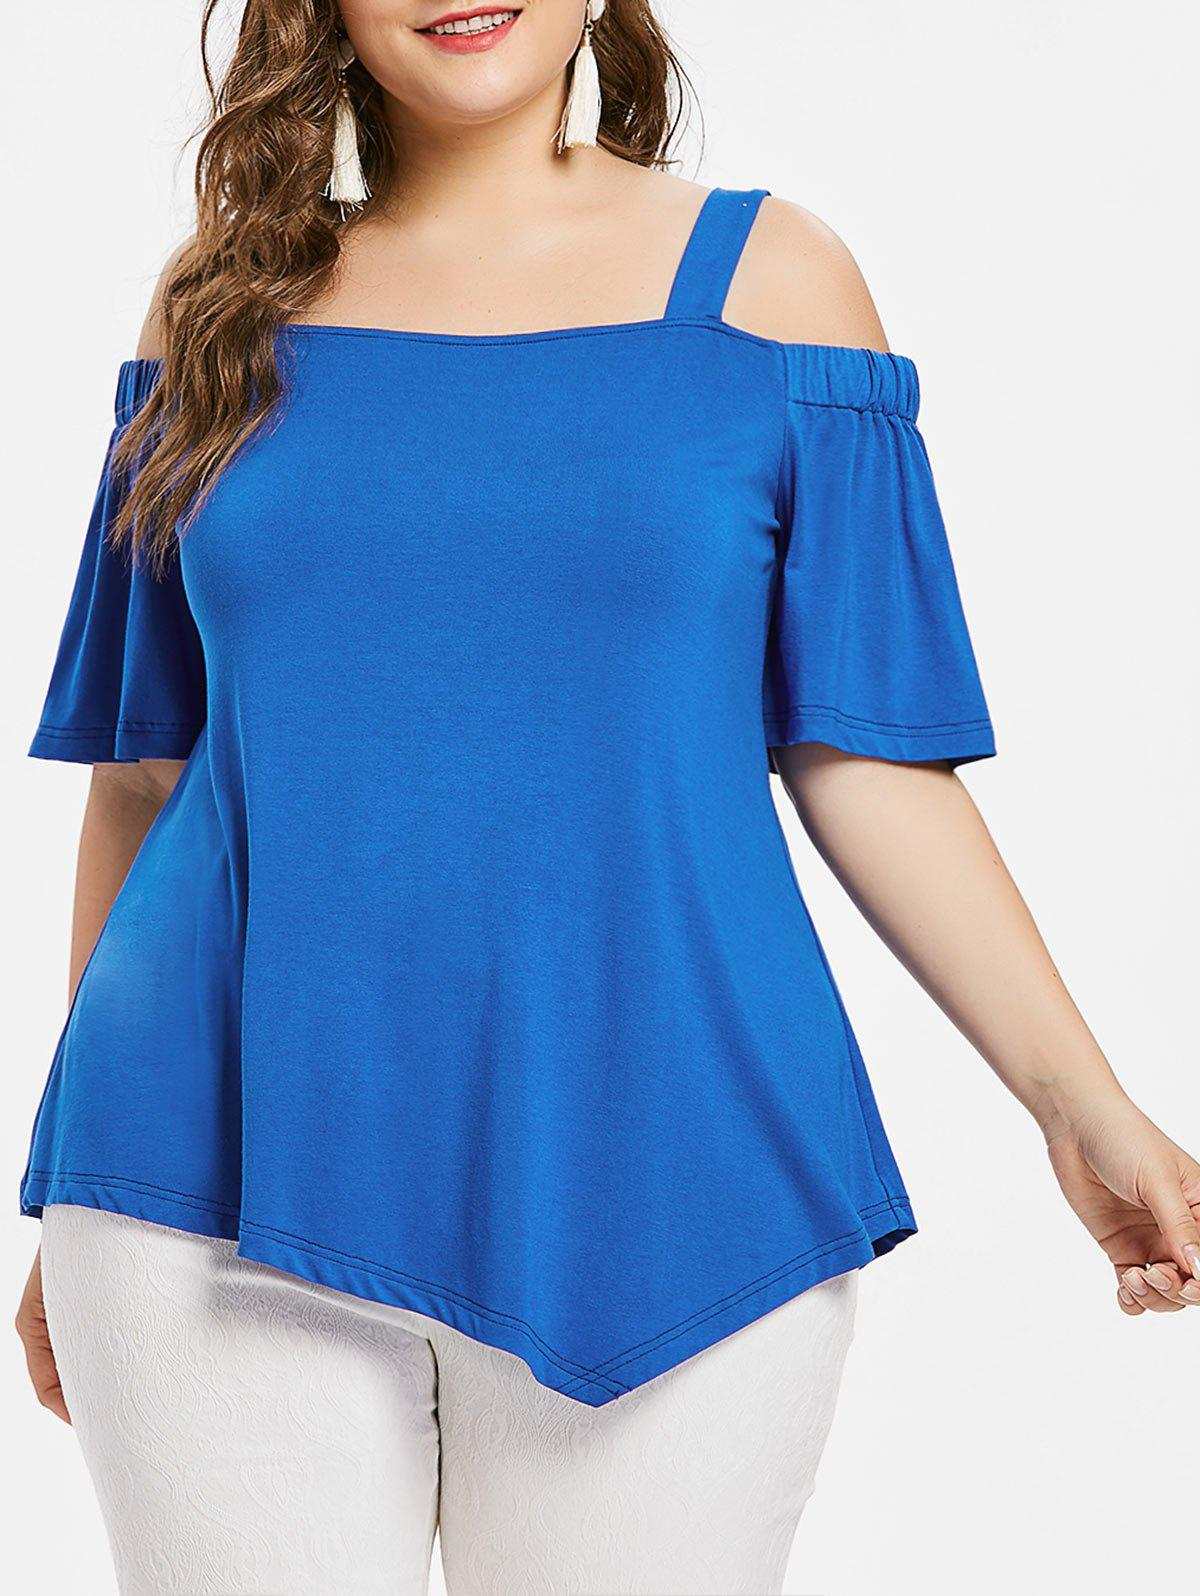 aaa8aab1192a27 48% OFF   2018 Plus Size Asymmetric Cold Shoulder Top In Blue 5x ...